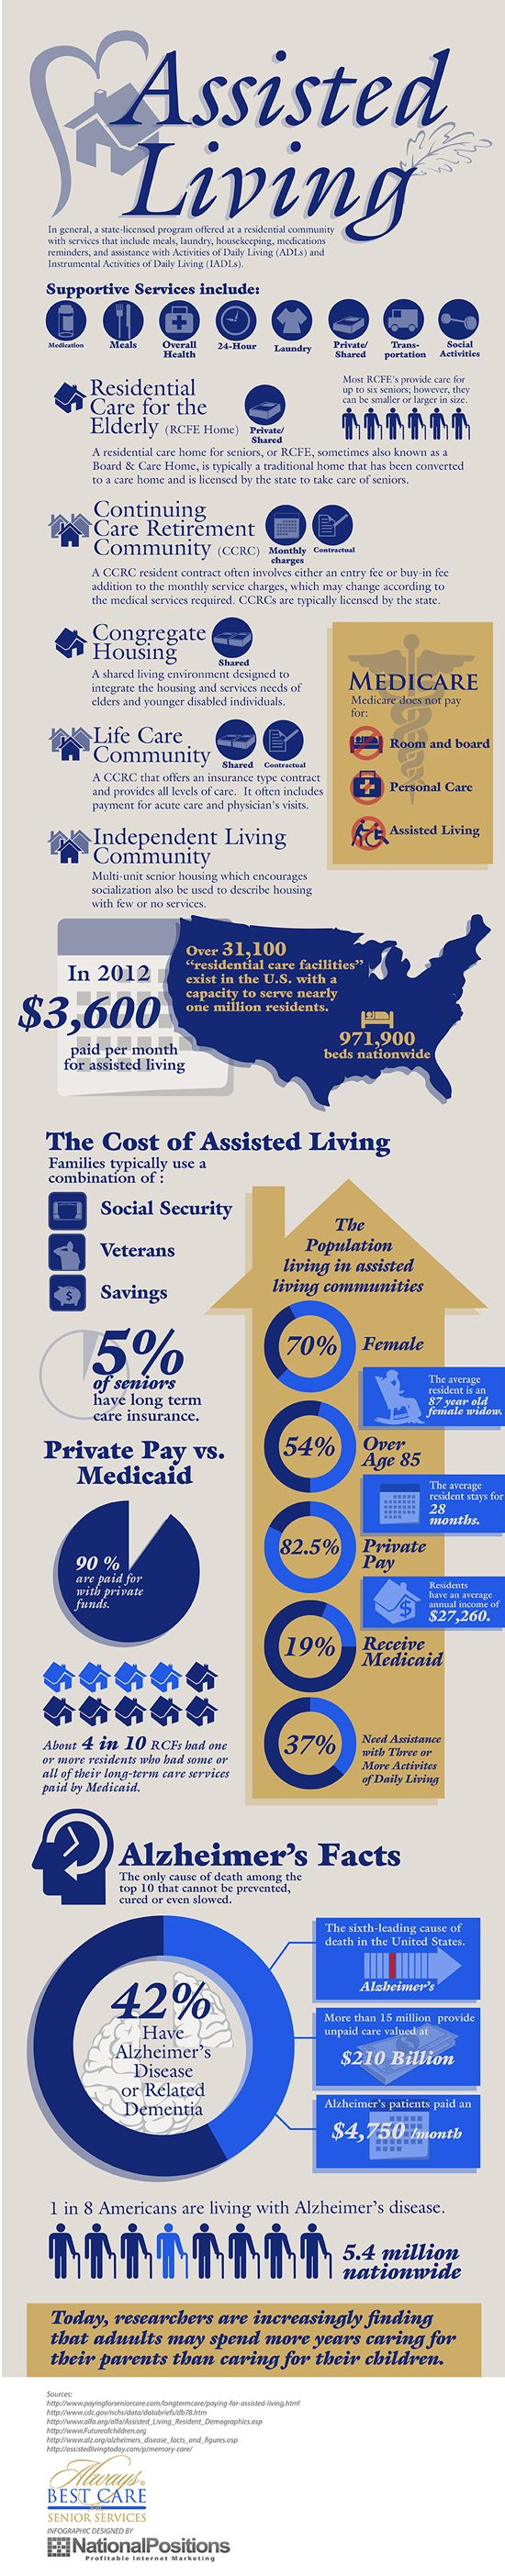 Cost Of Assisted Living Services Across America - Many seniors require some help in their day to day lives. What does assisted living cost across America?  - sponsored